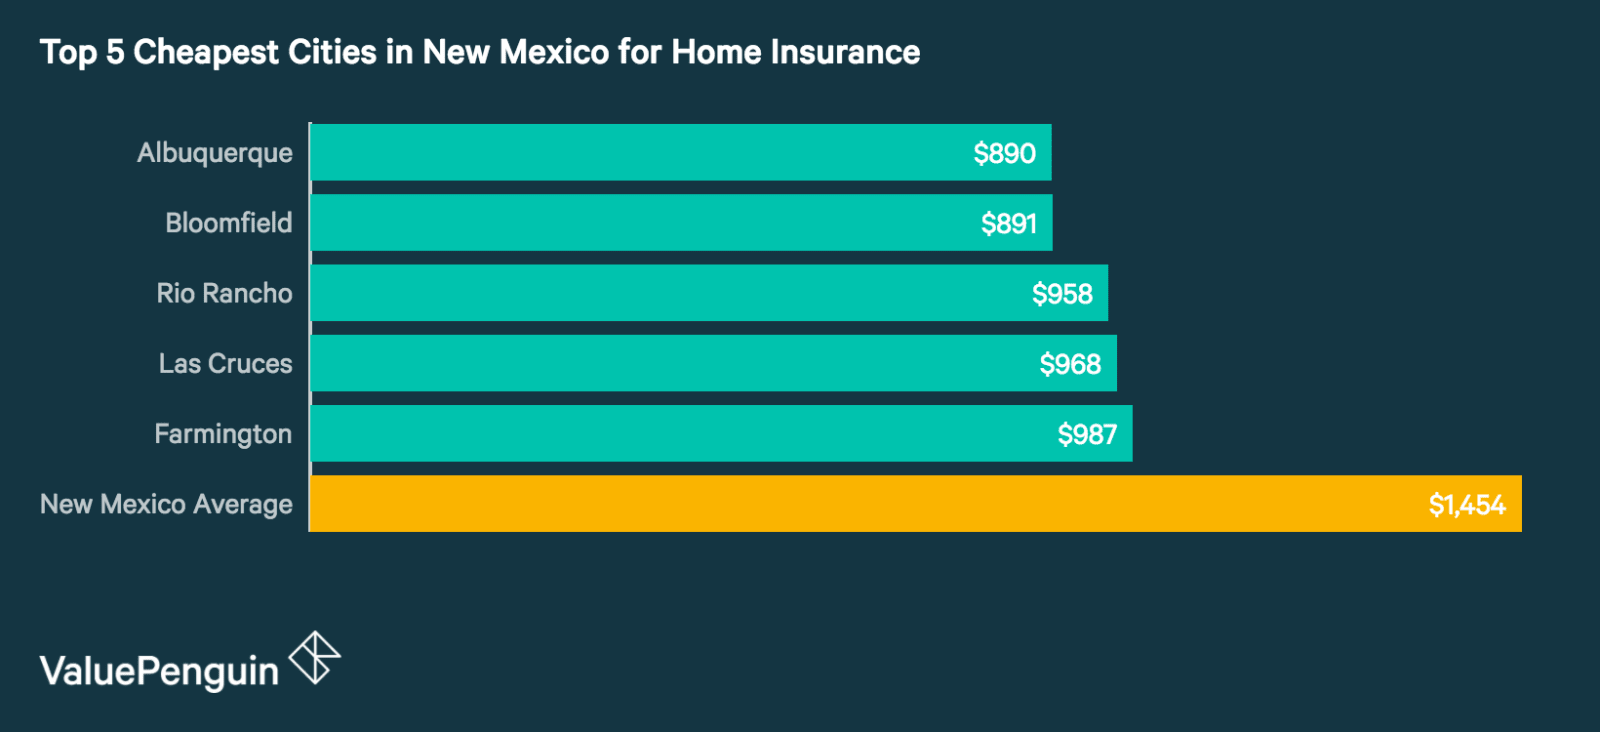 Top 5 Cheapest Cities in New Mexico for Homeowners Insurance